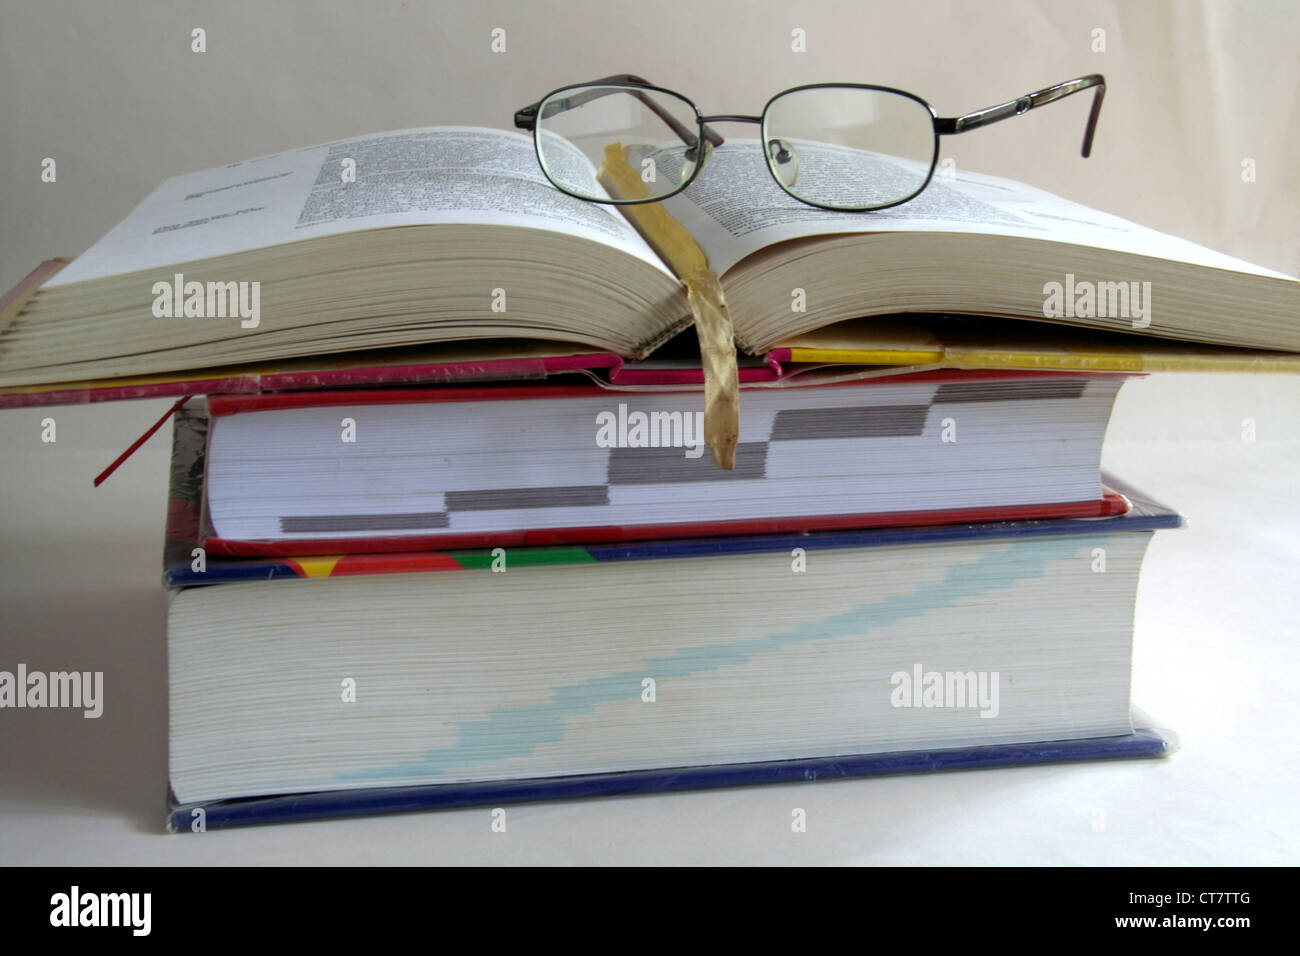 Books-Storehouse of Knowledge stalked for reference - Stock Image